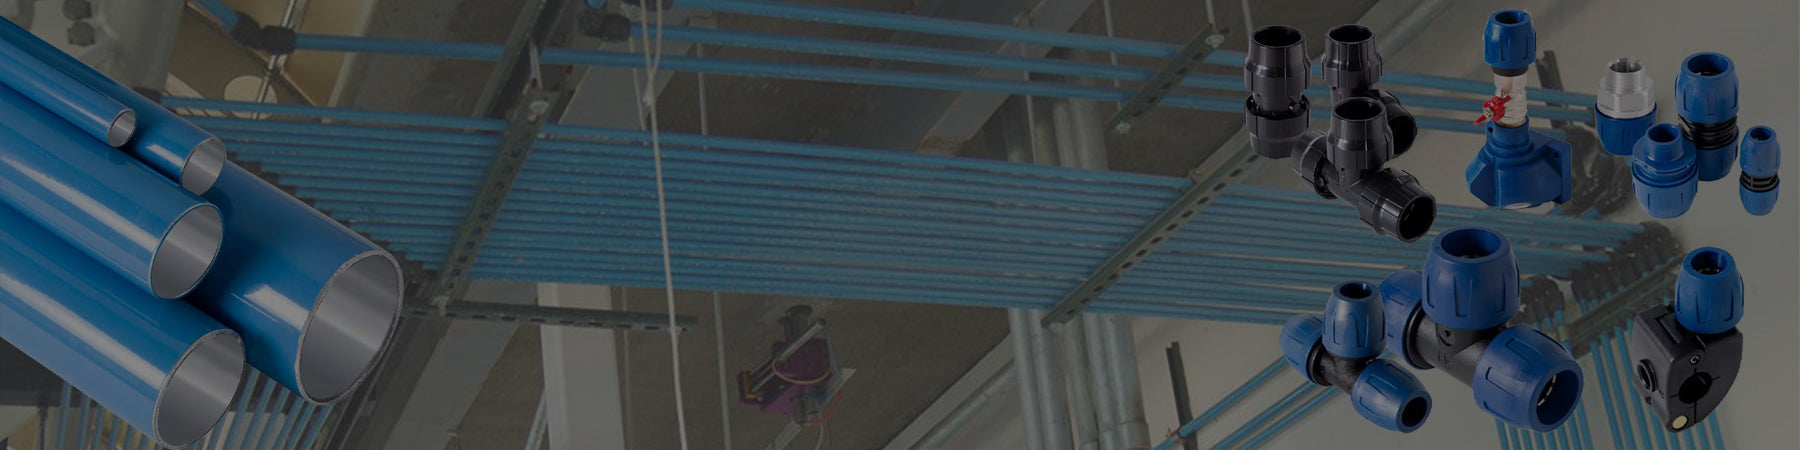 Purstream compressed air piping